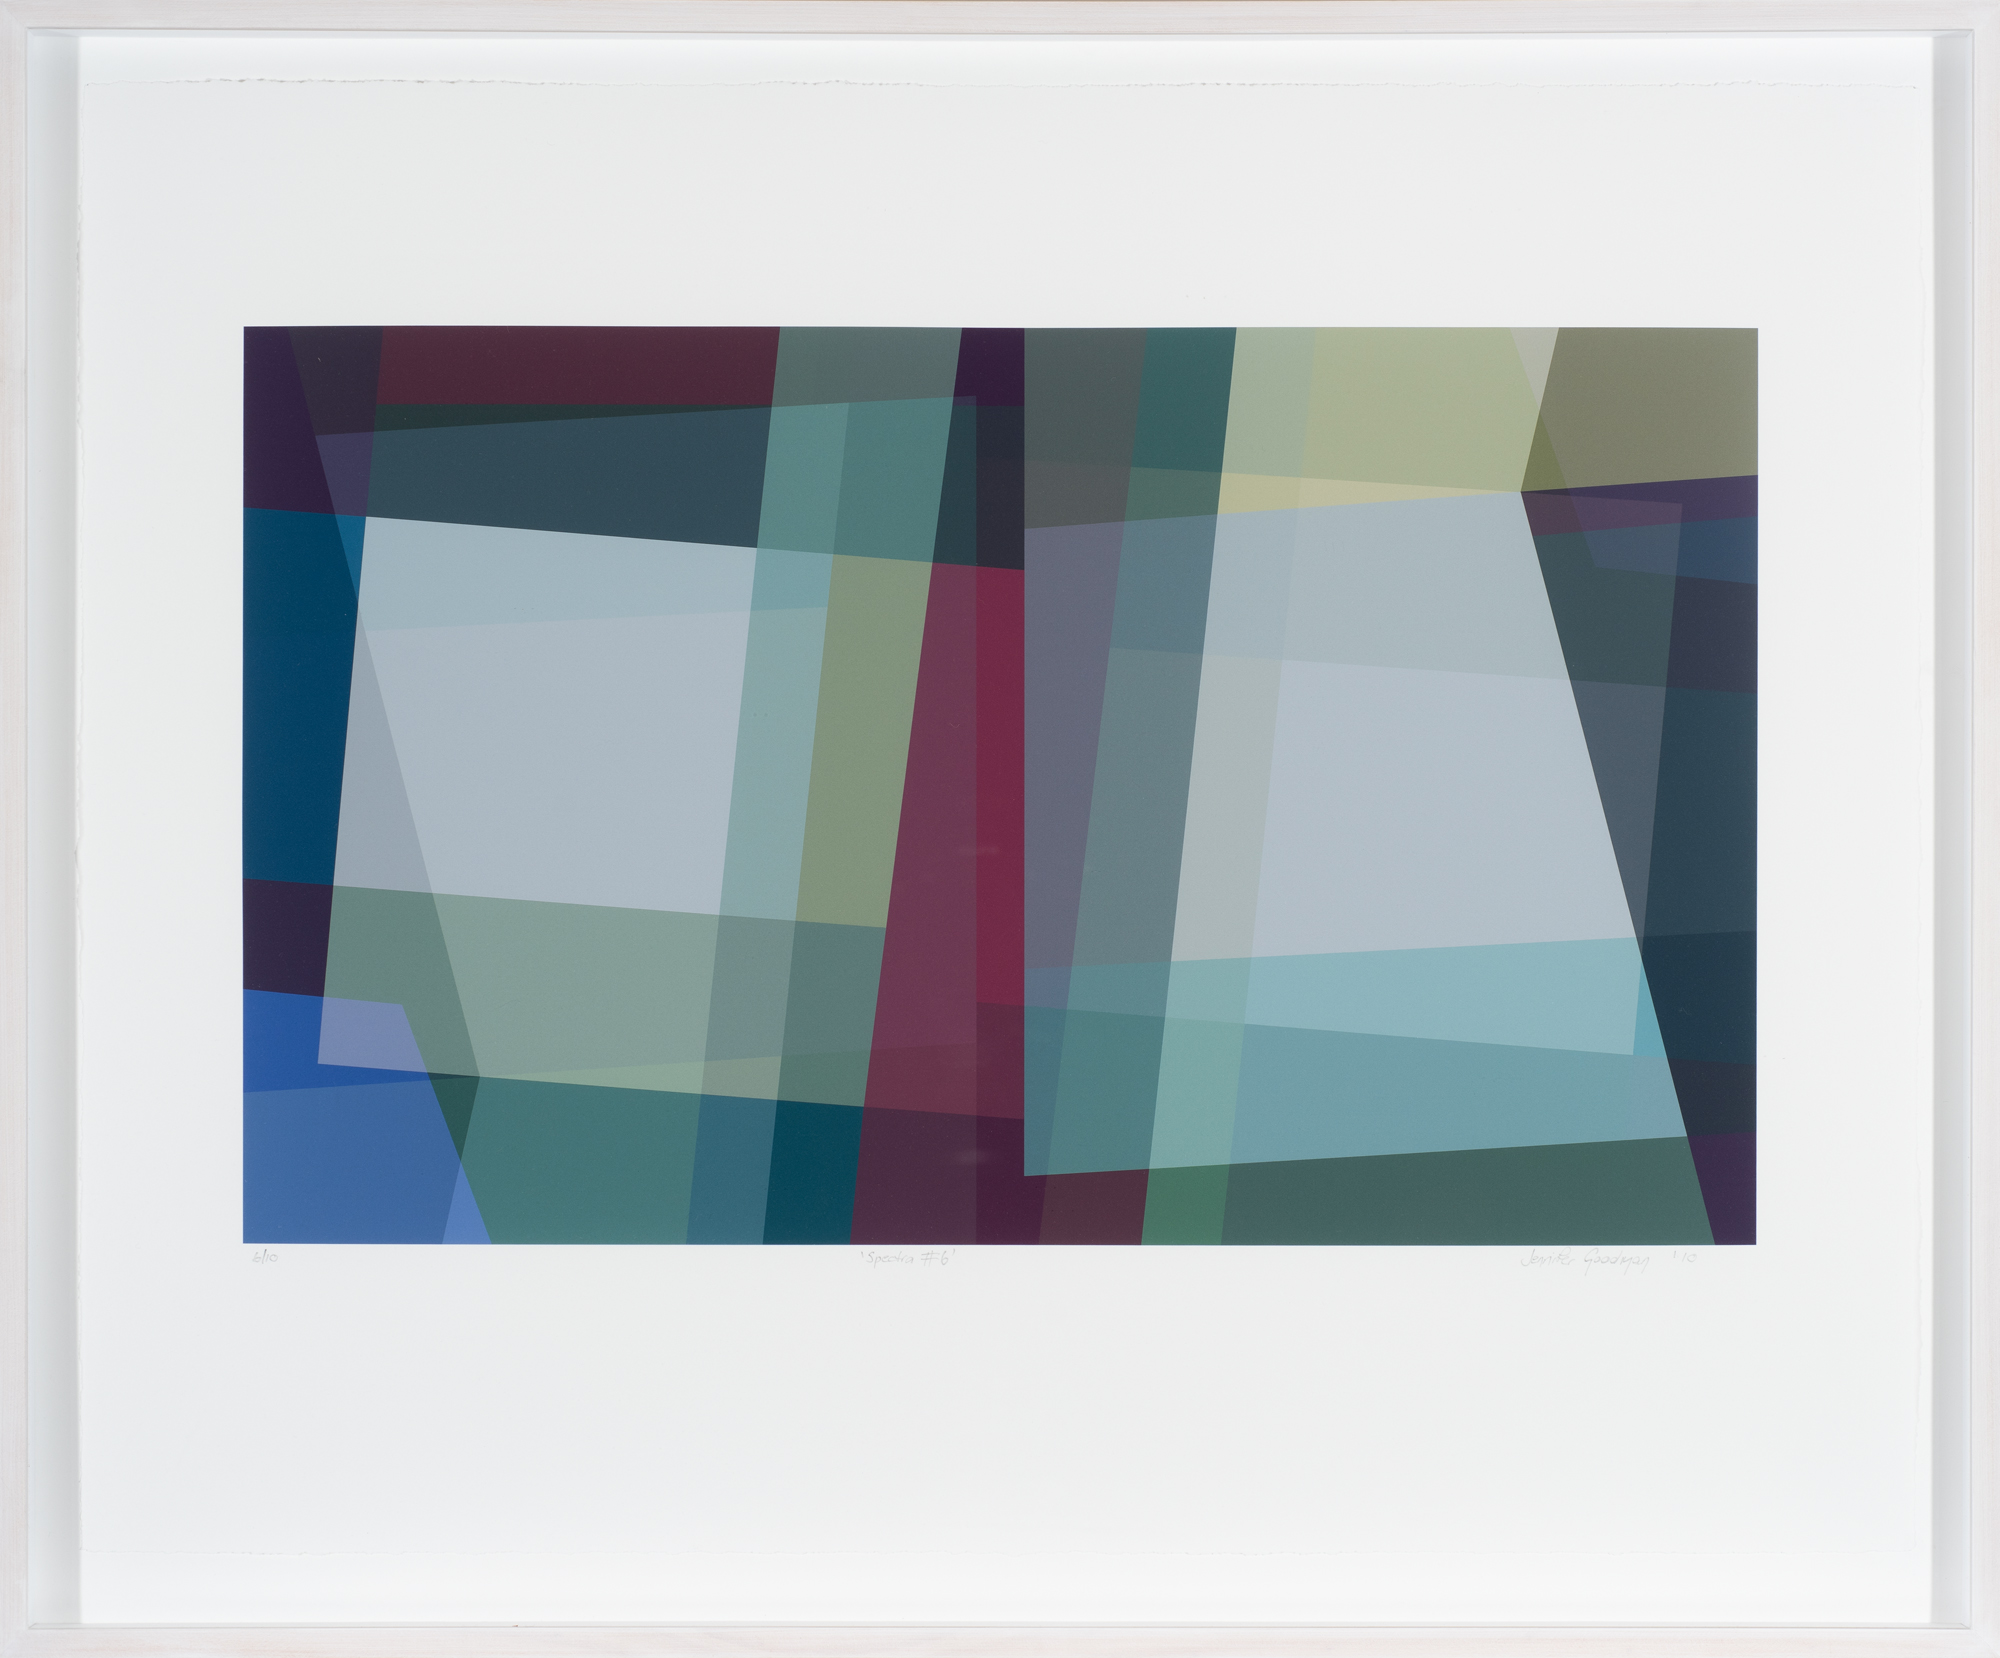 Jennifer Goodman, Spectra 6 2010 pigment print on cotton rag 35x58cm